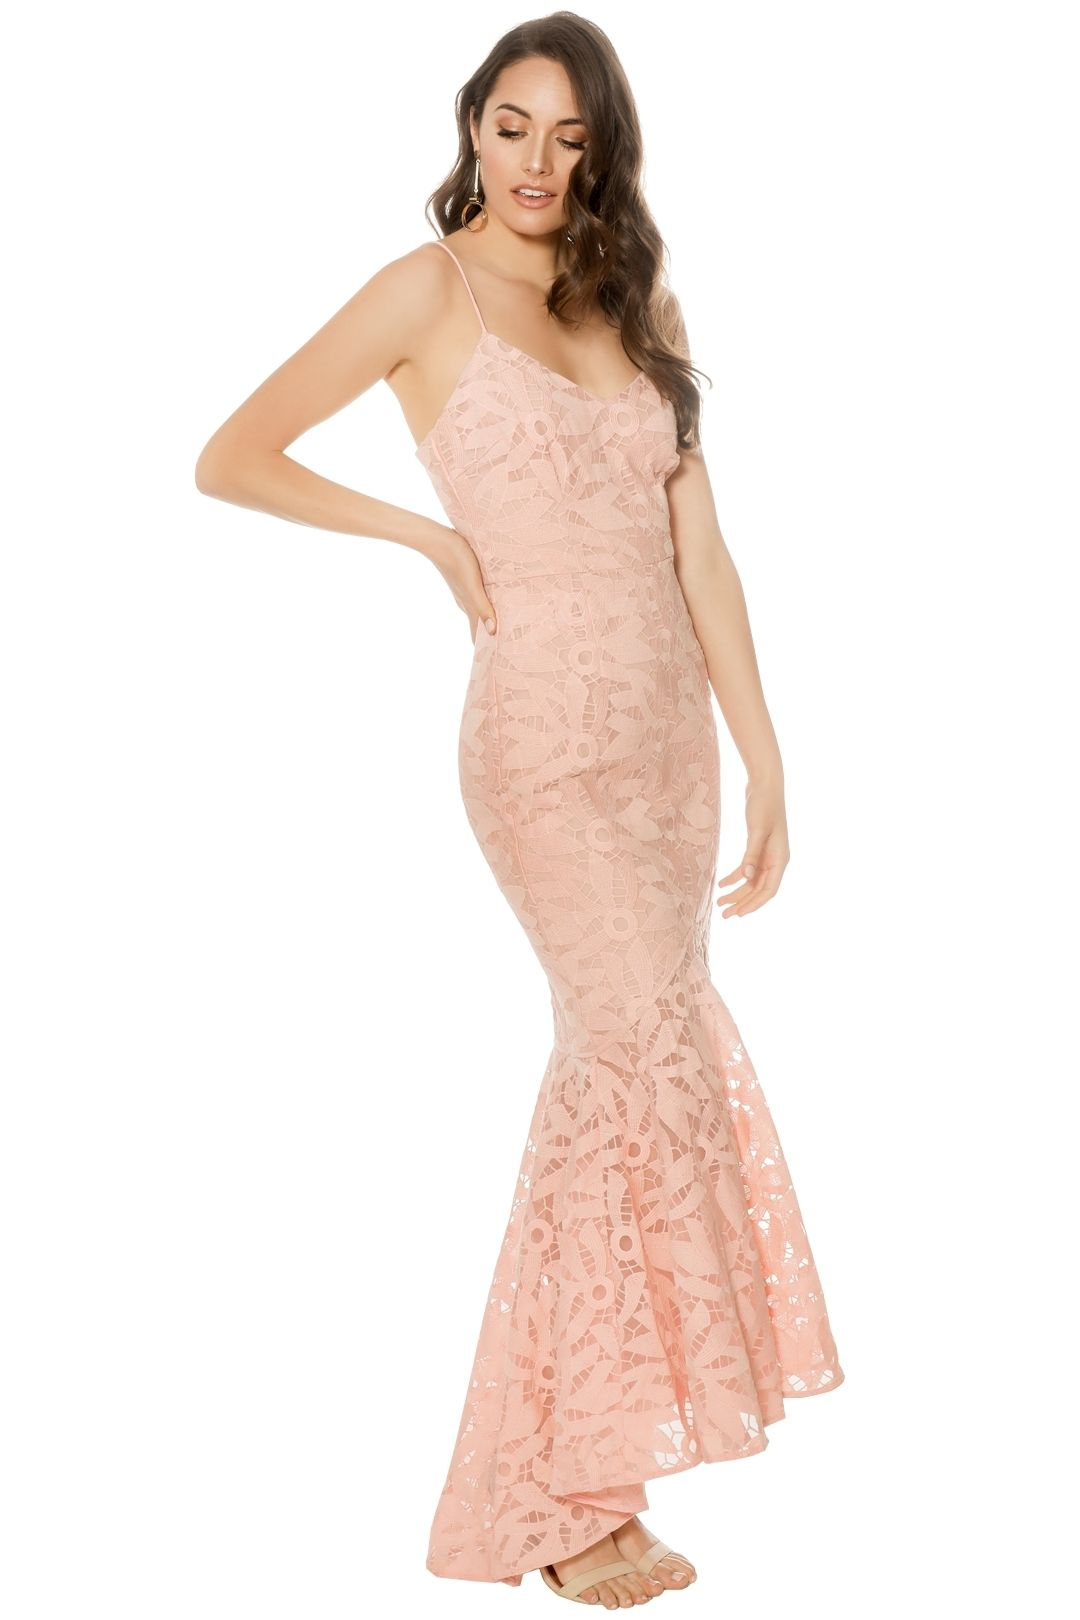 Cooper St - Lady of Venice - Pink - Side